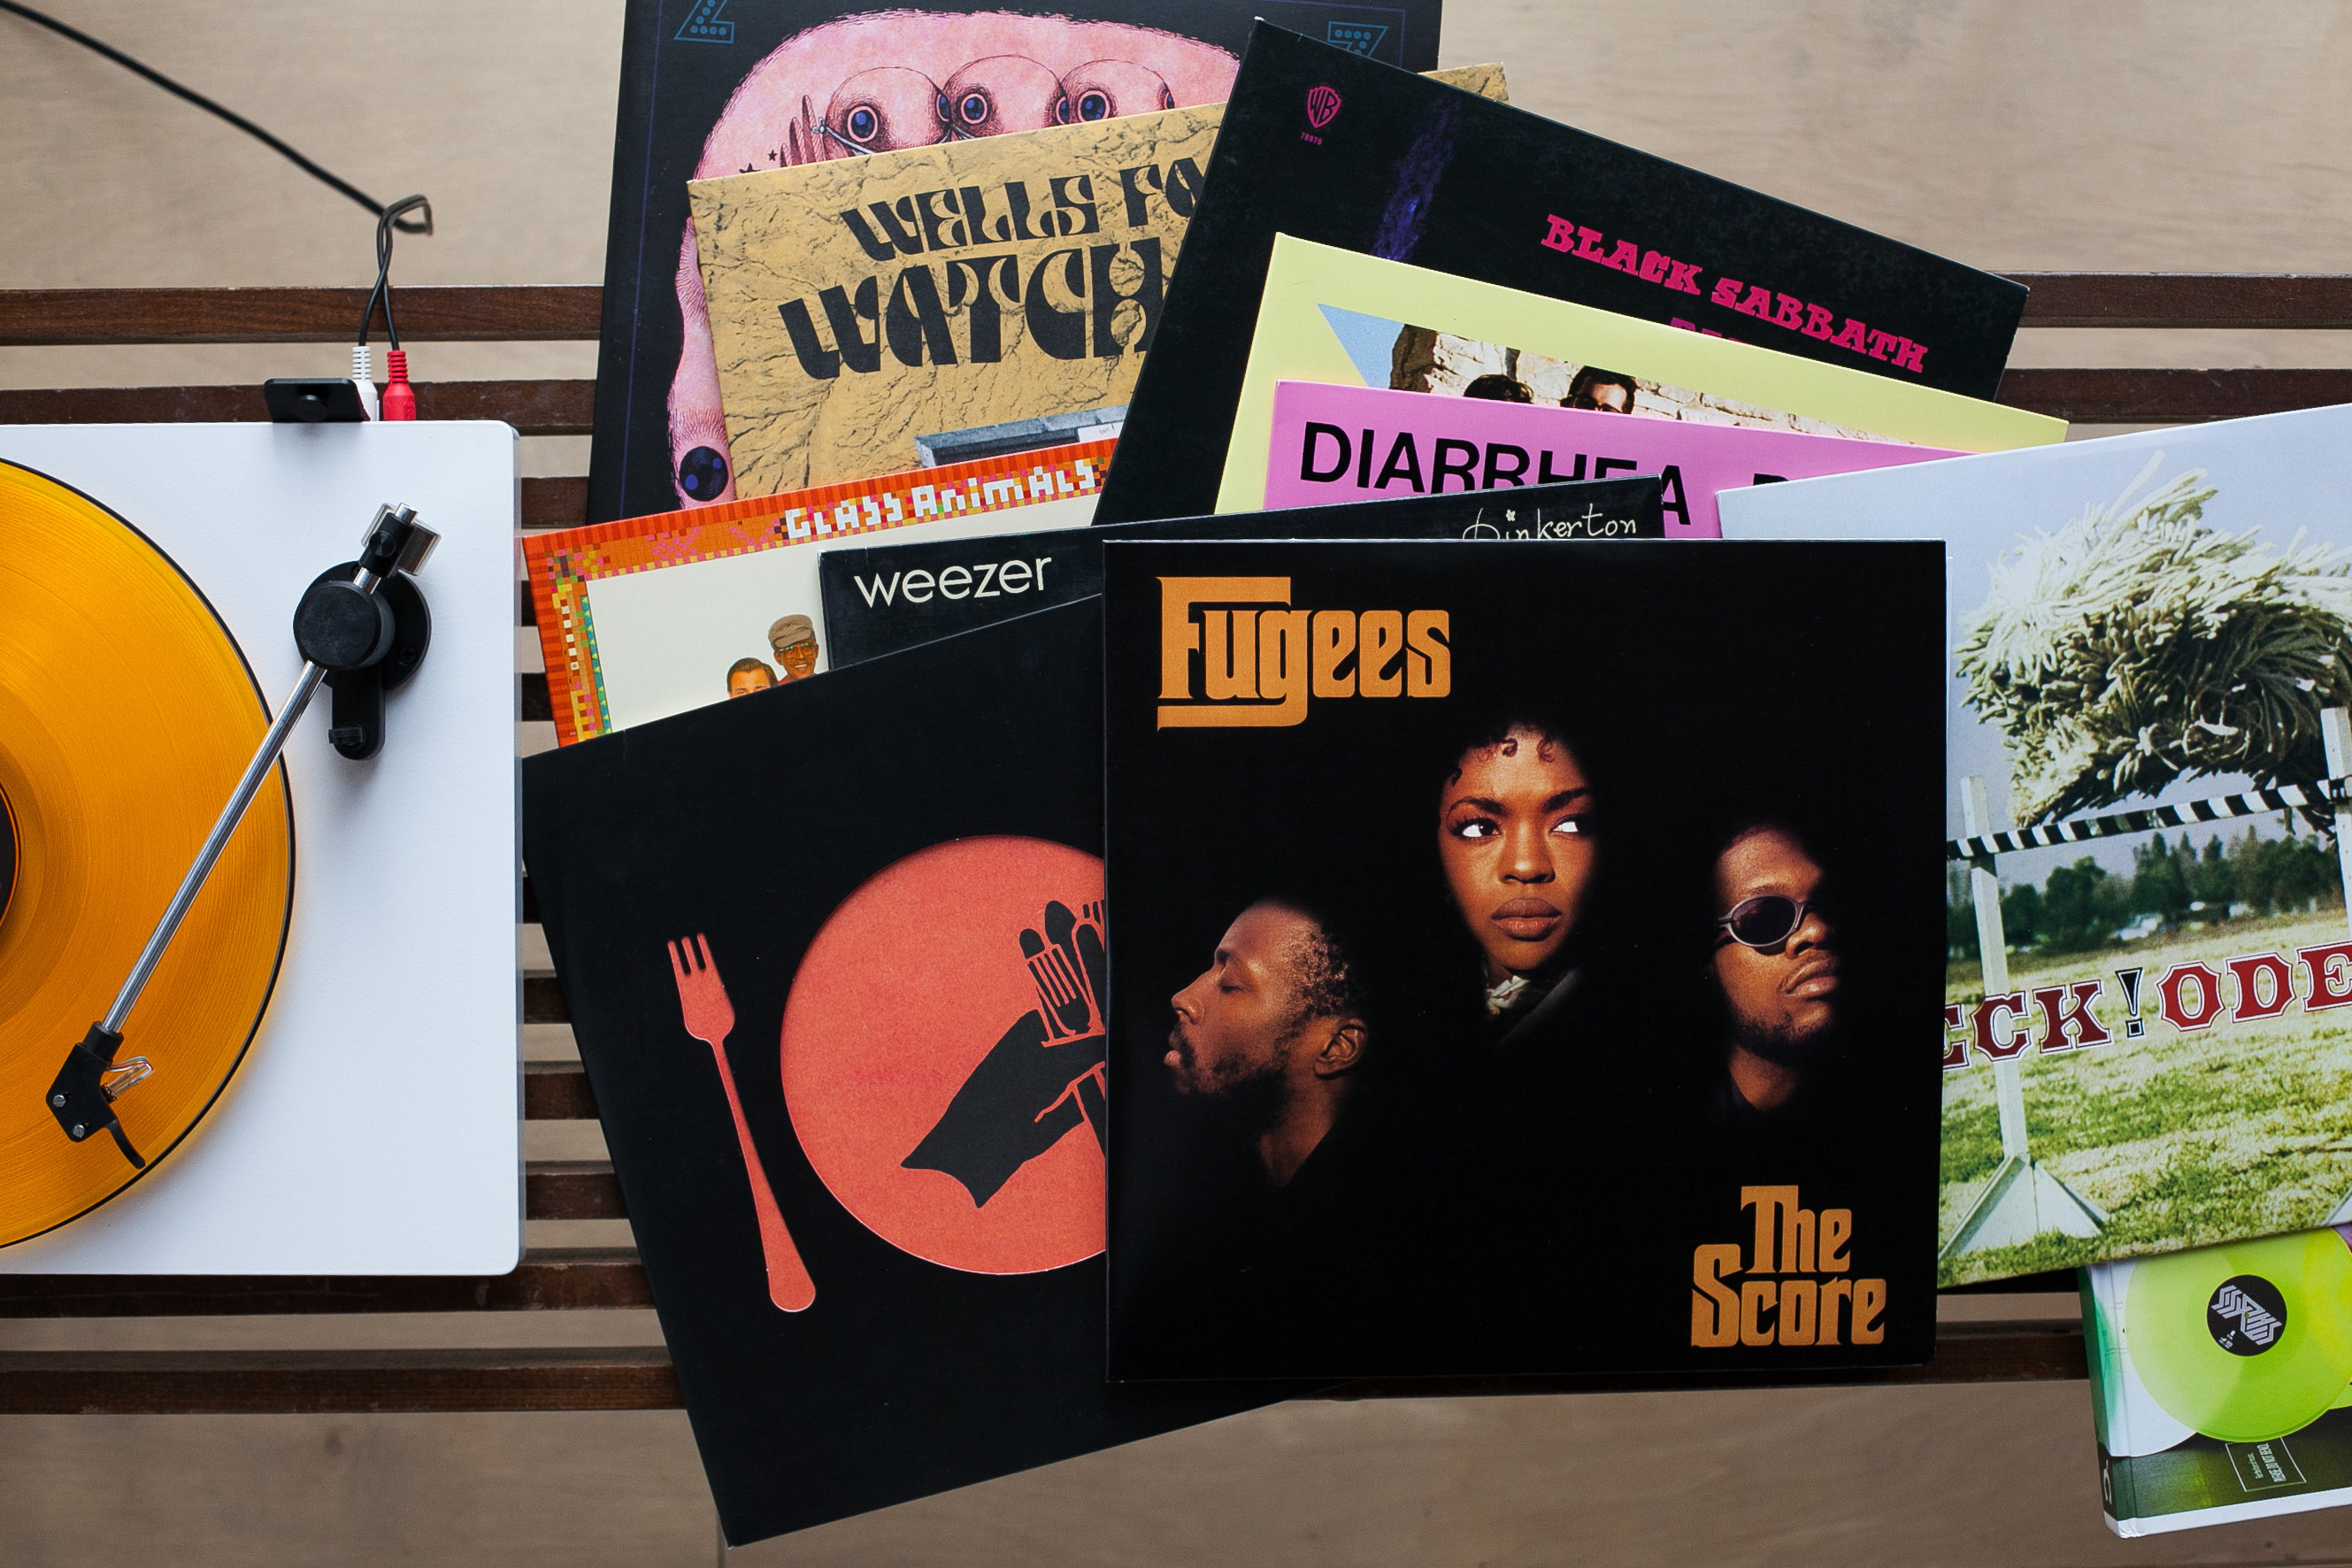 """A collection of records, including """"The Score' by the Fugees"""